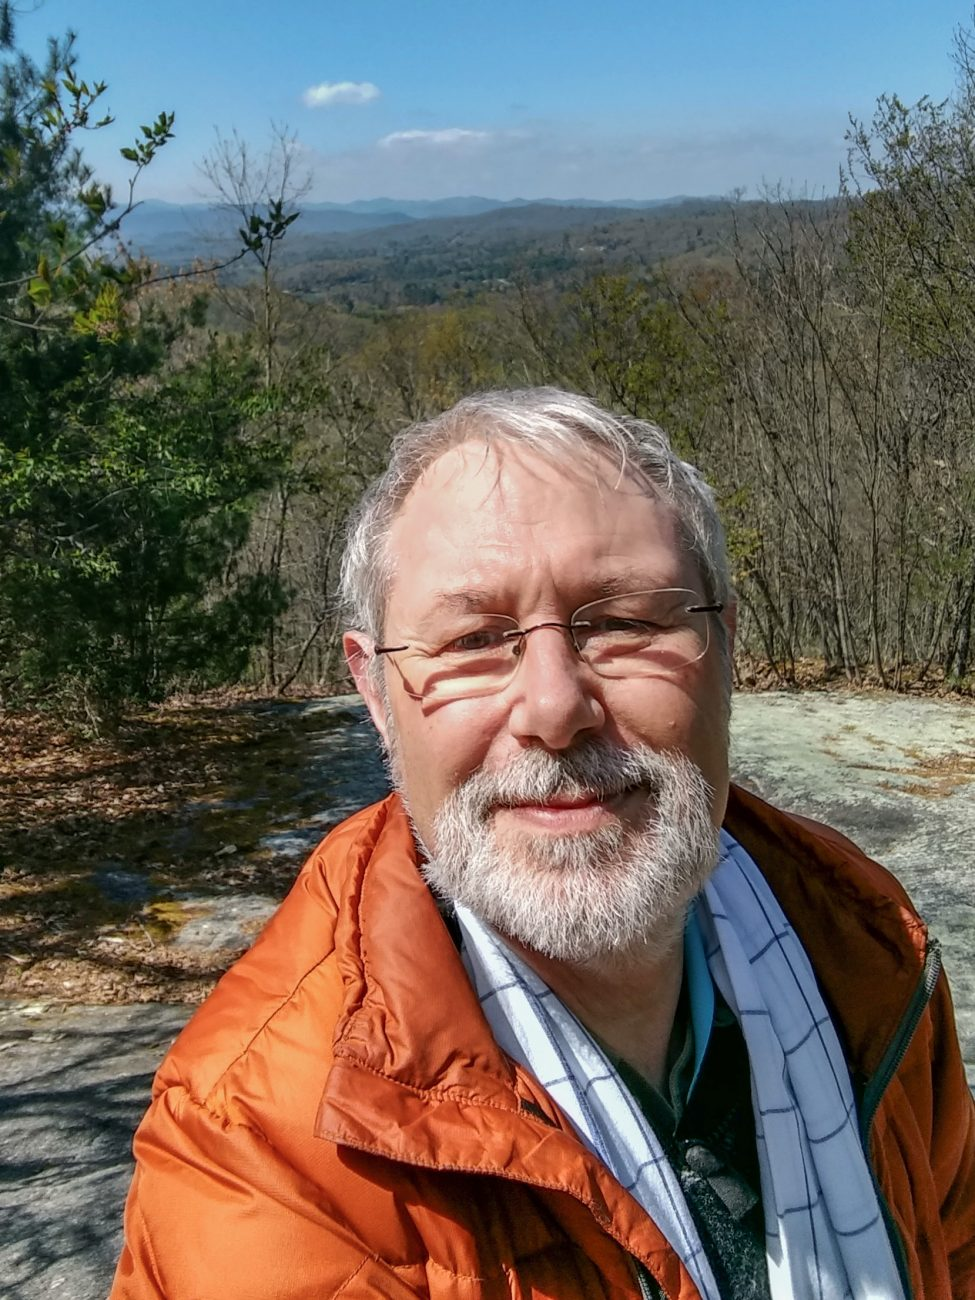 Photograph of Gary Allman on the hiking trails at Kanuga -- Near Hendersonville, North Carolina